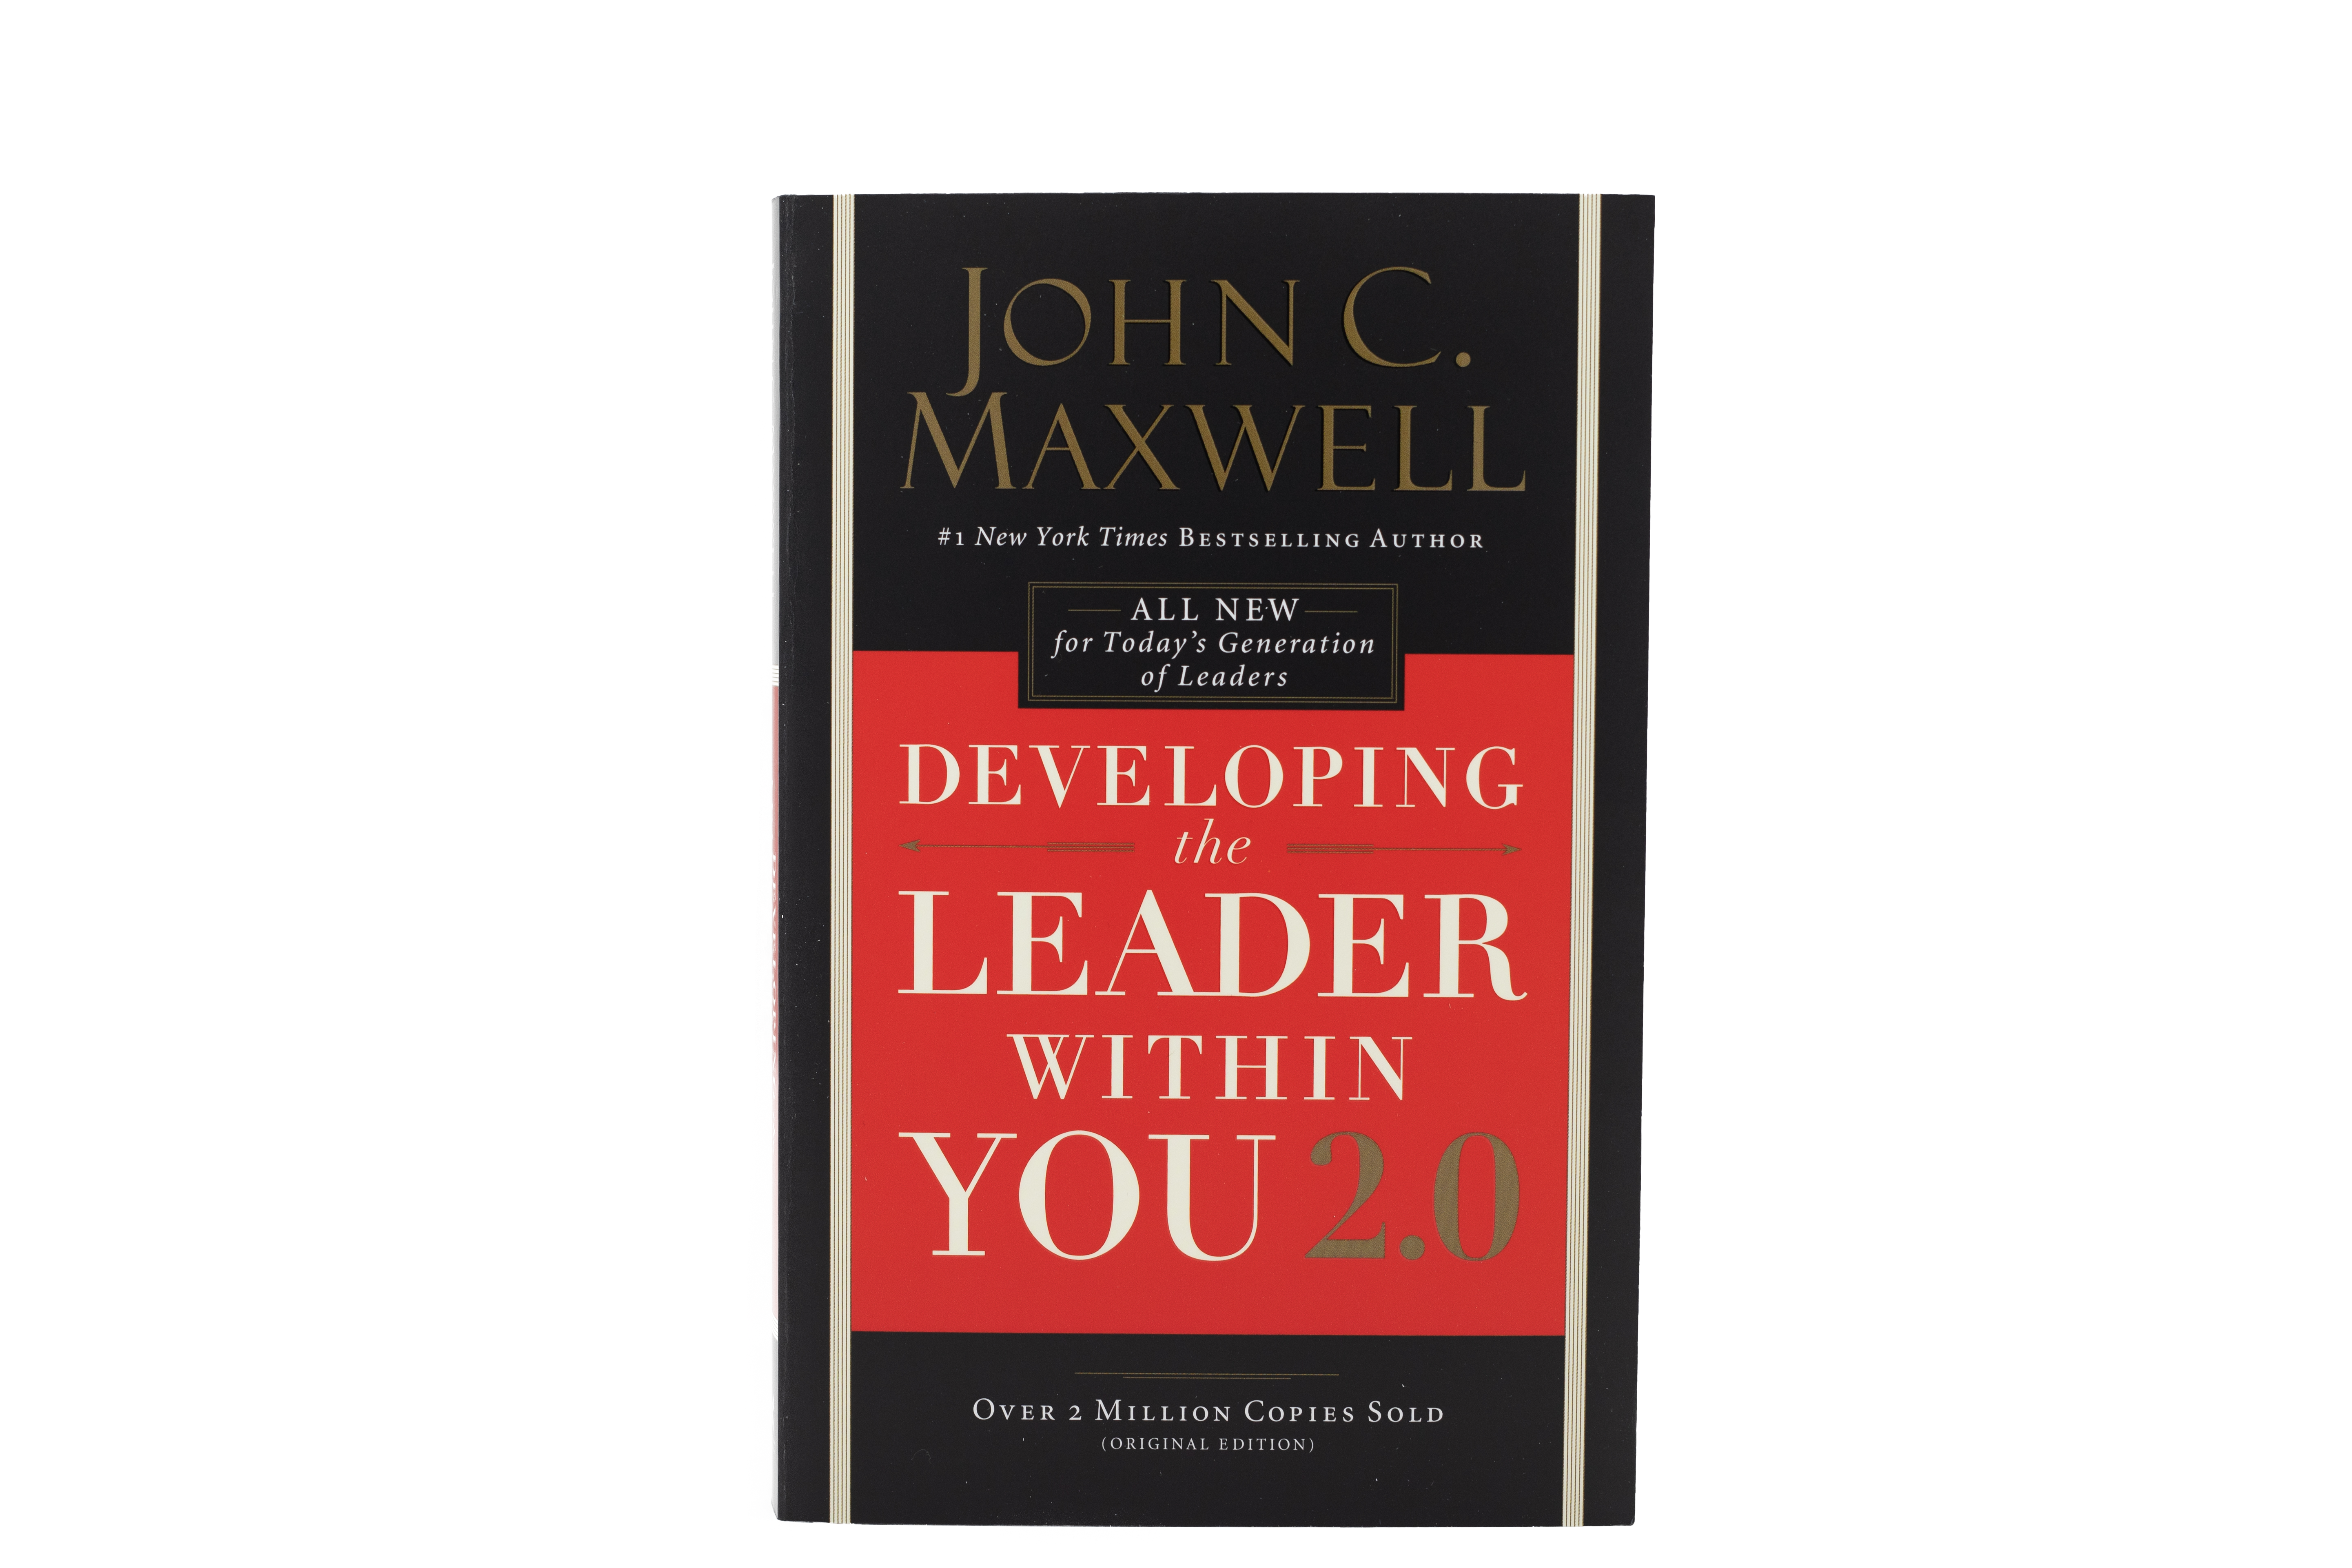 Developing the Leader Within You 2.0 - Paperback